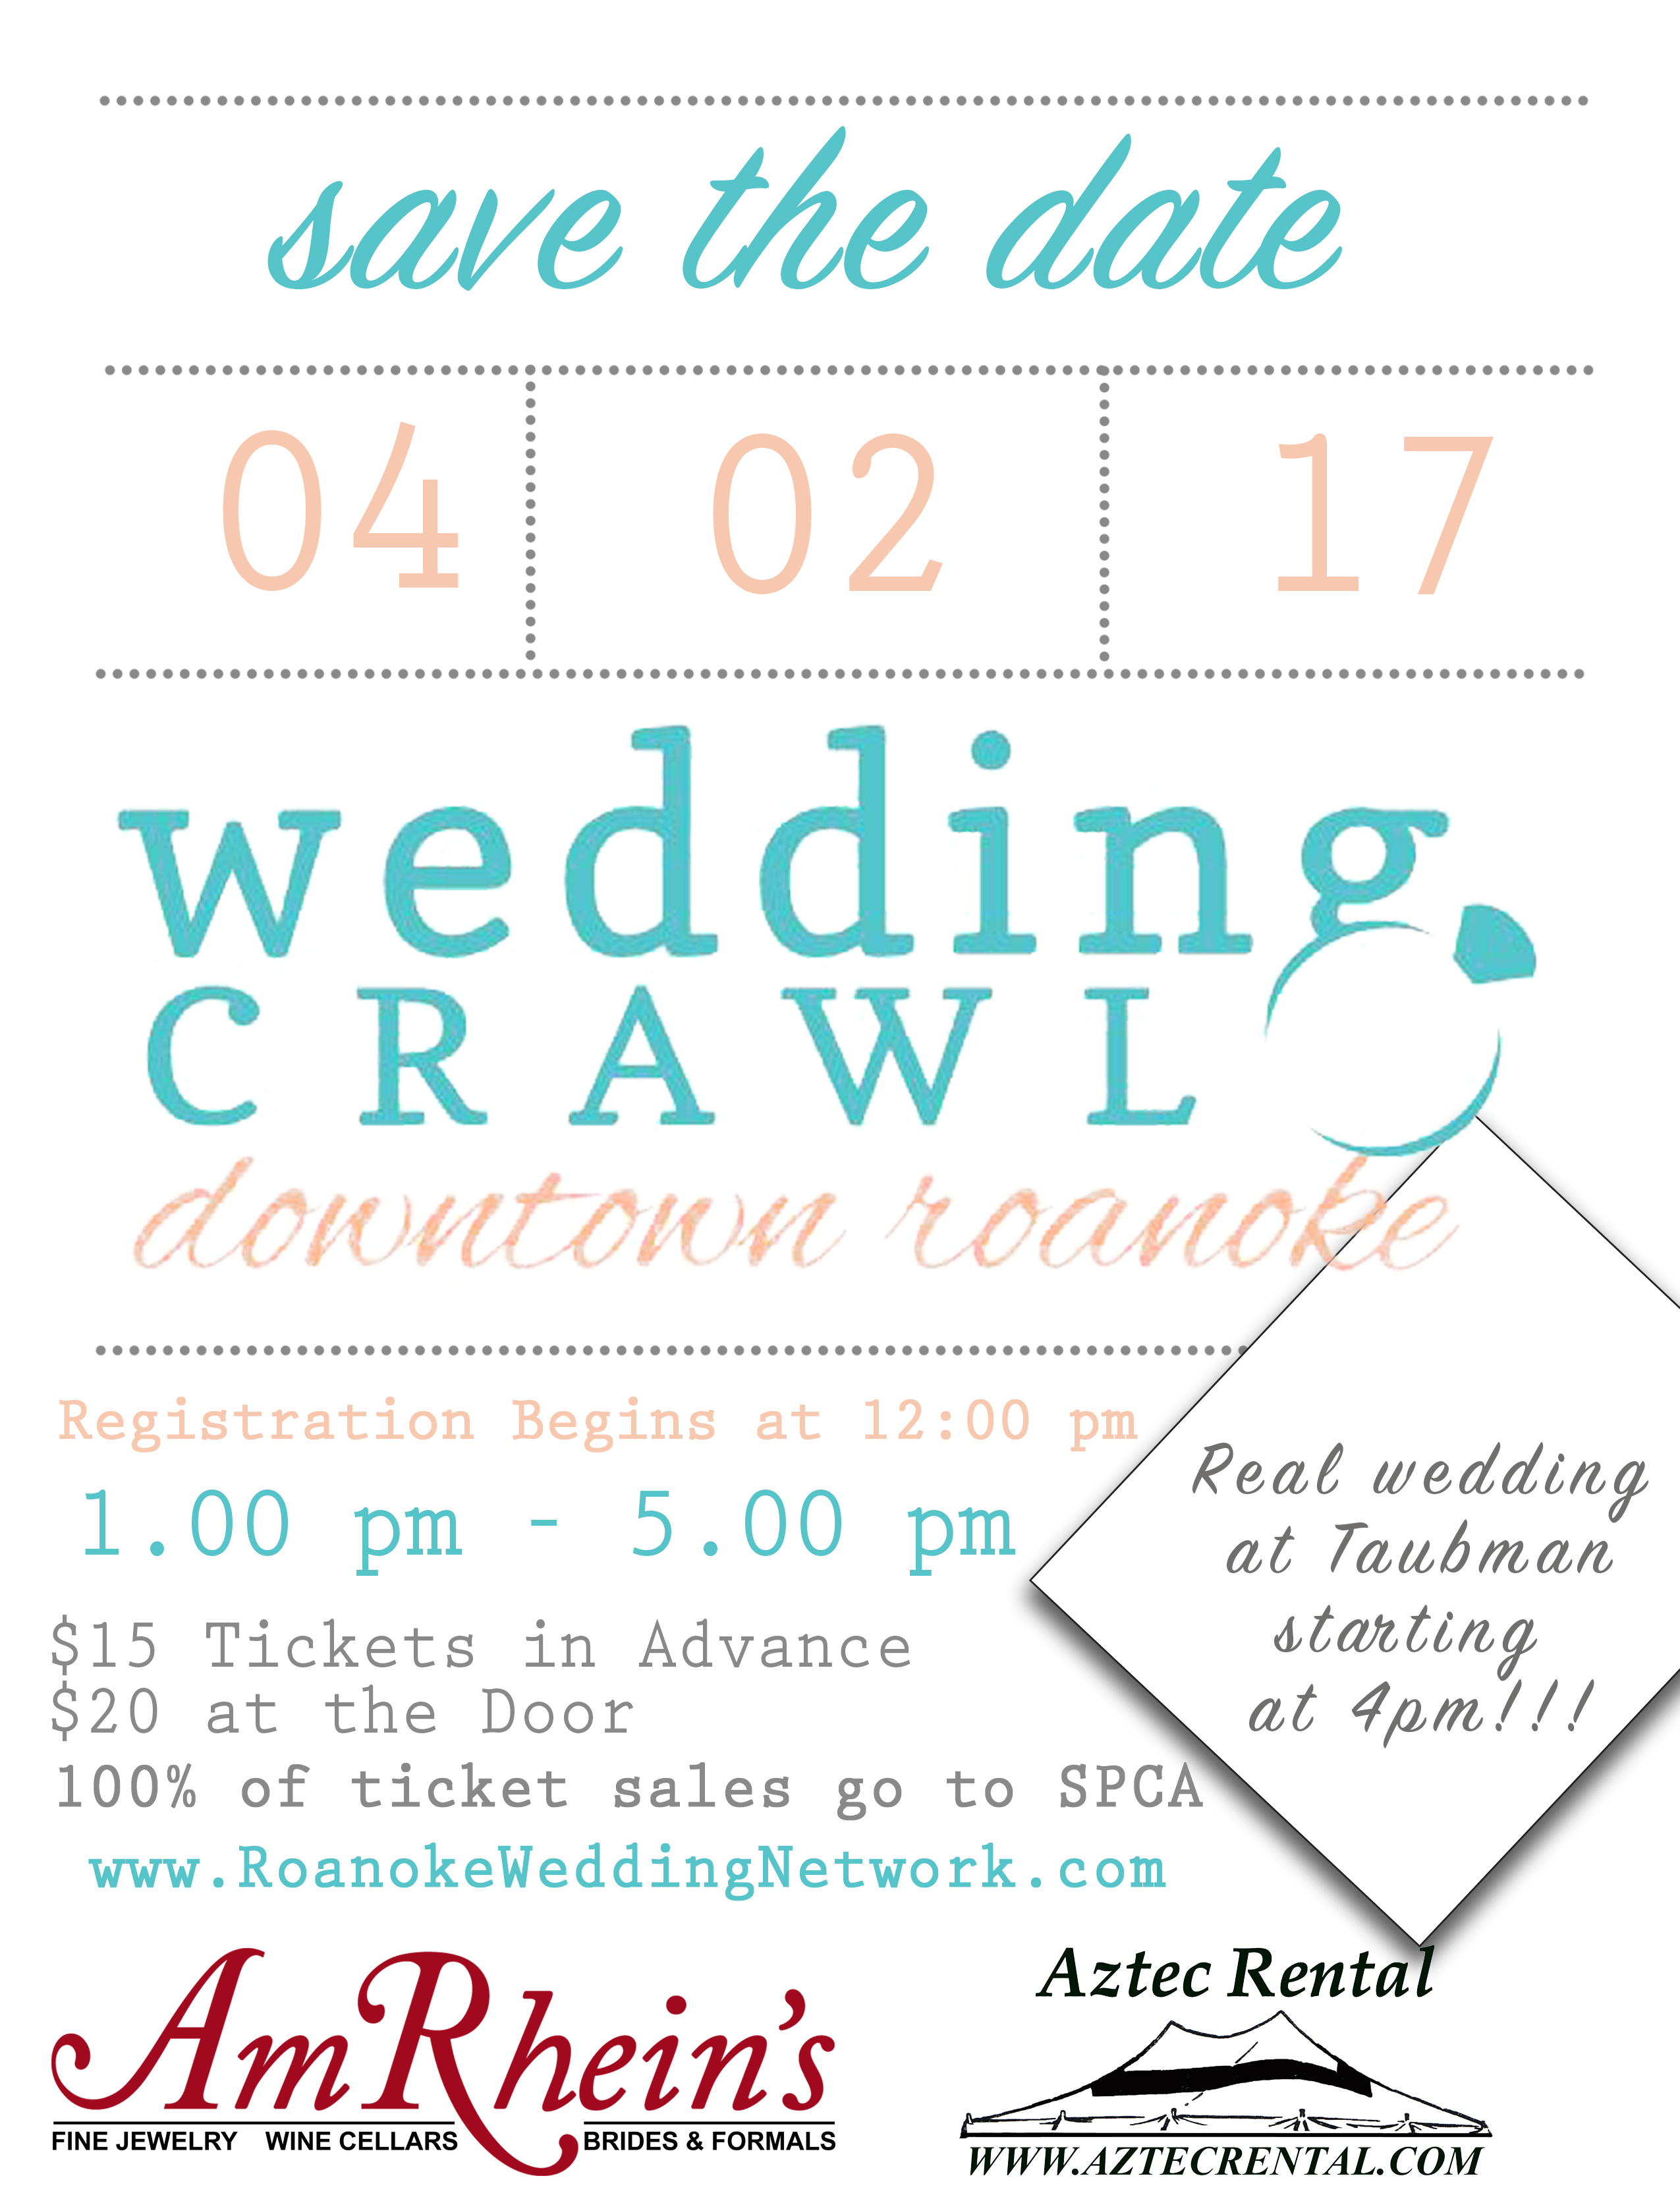 Roanoke Wedding Crawl